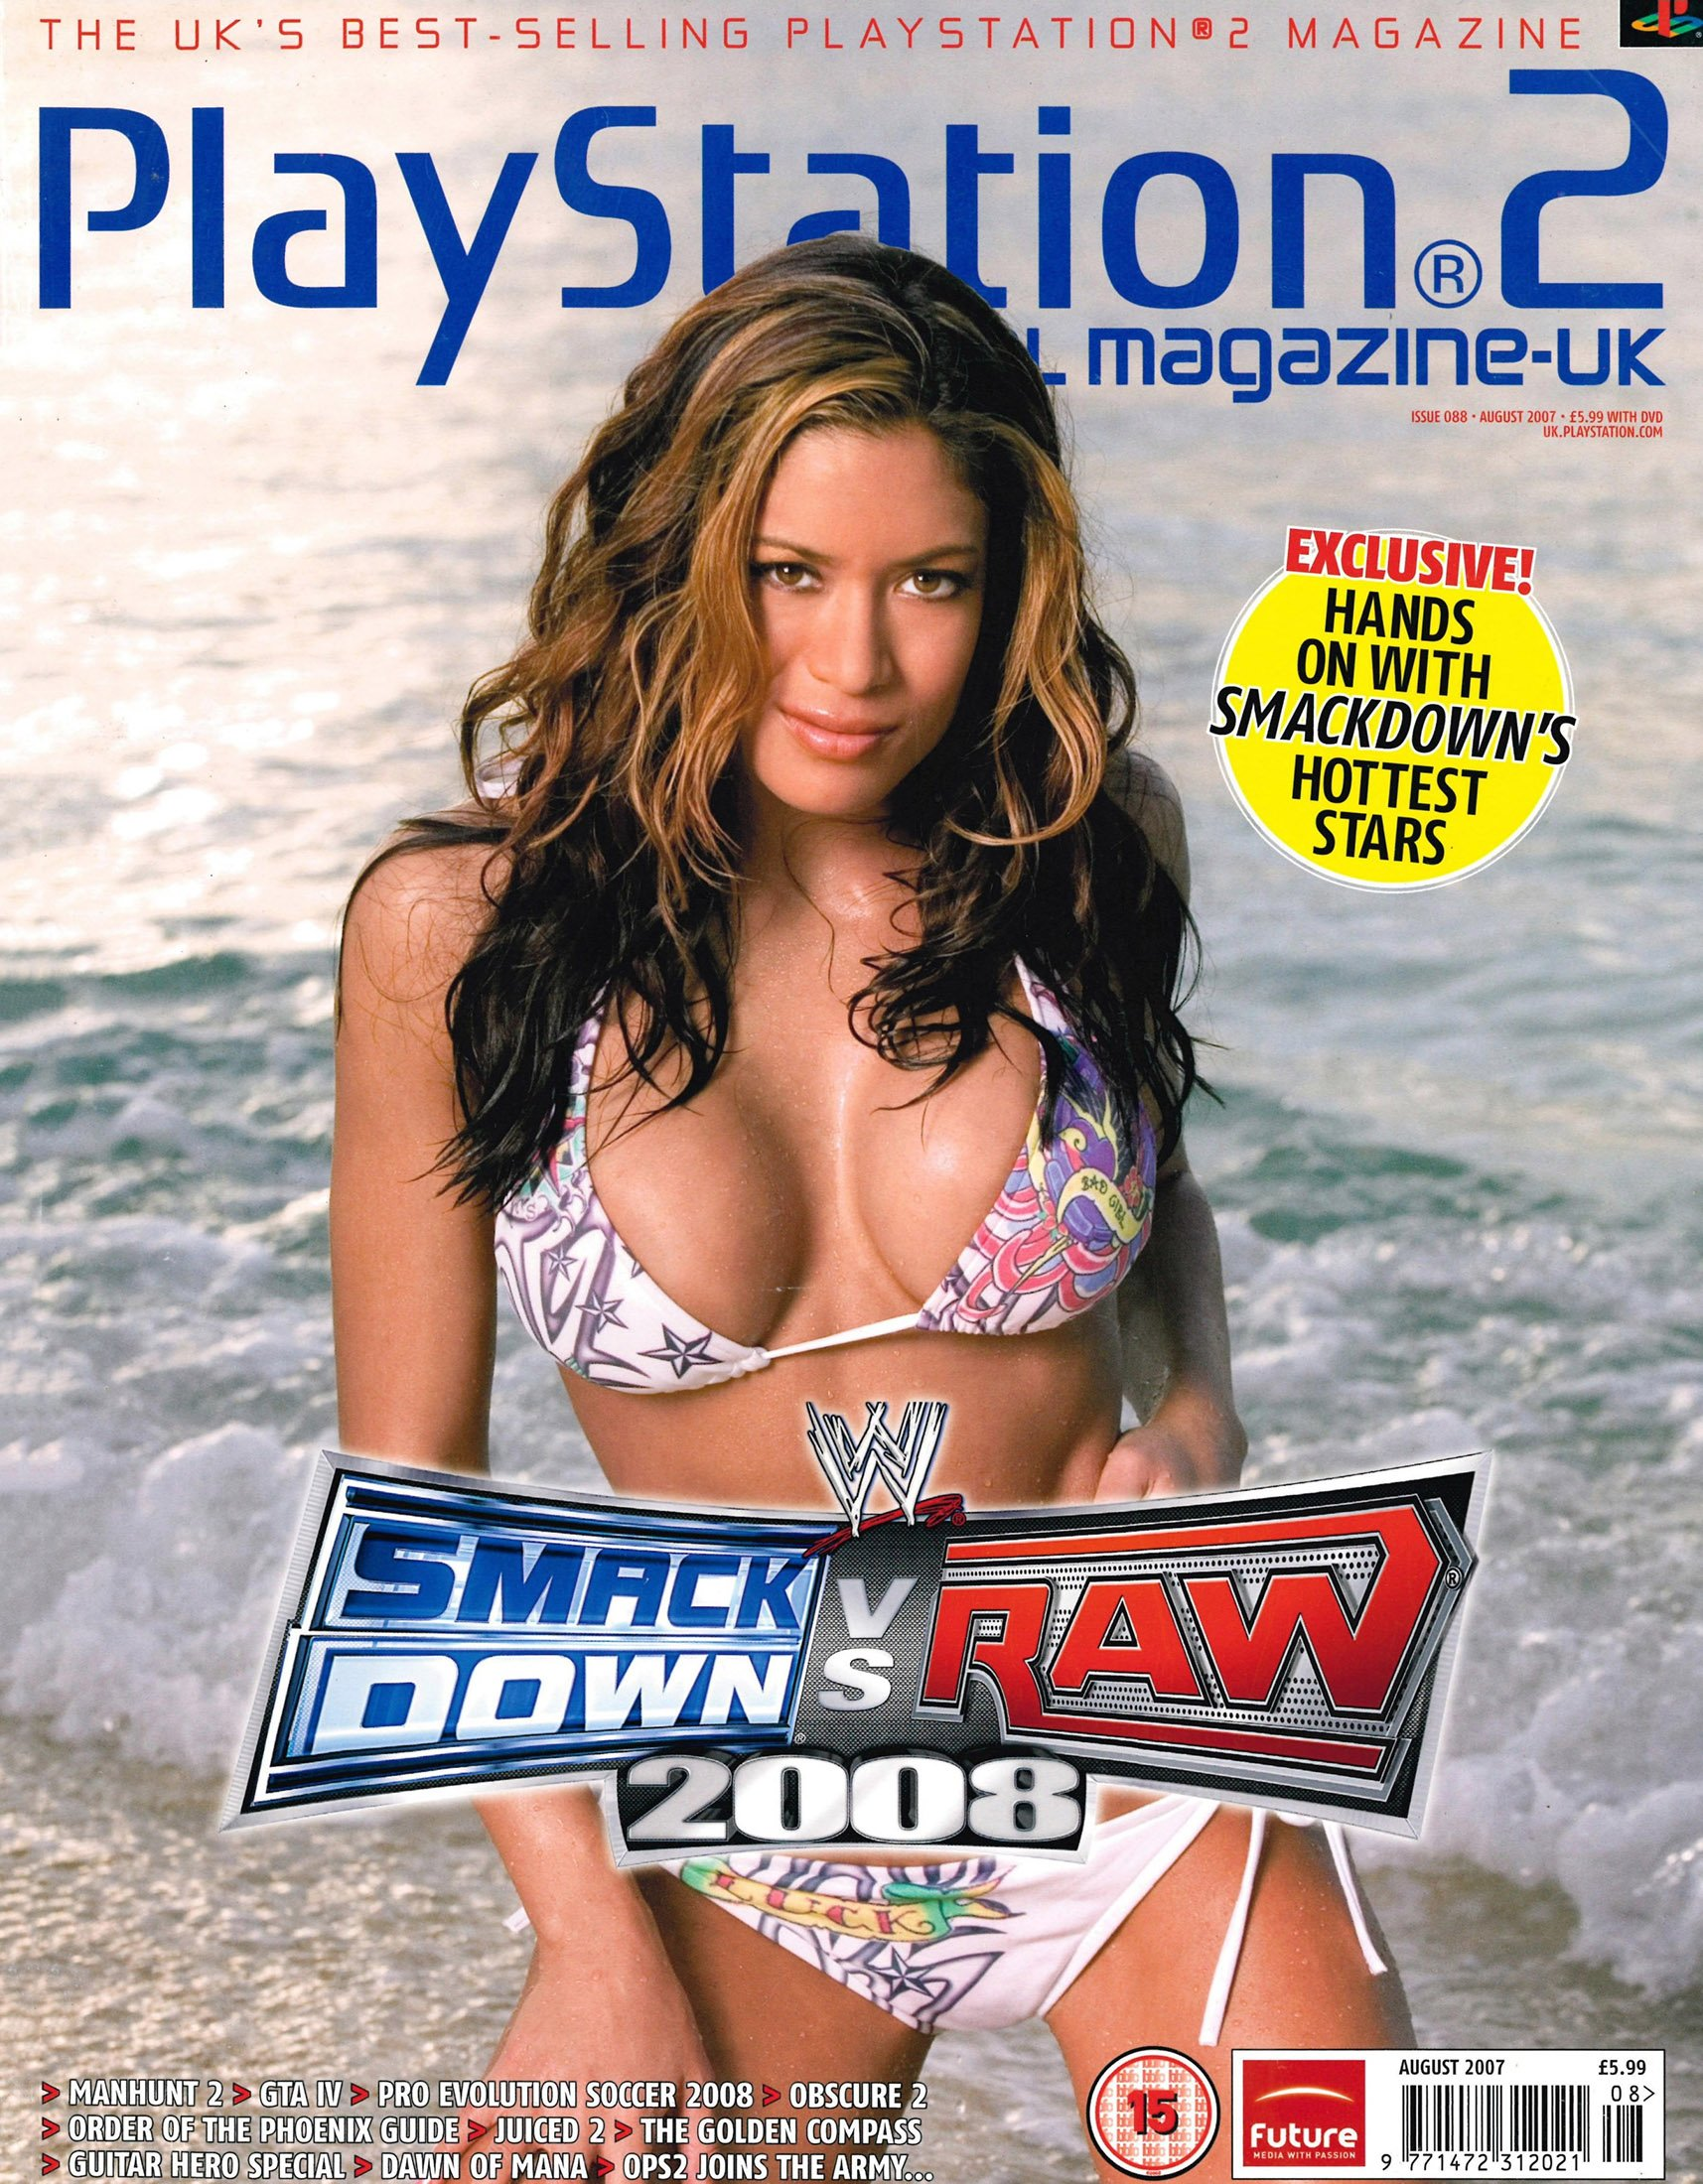 Official Playstation 2 Magazine UK 088 (August 2007)